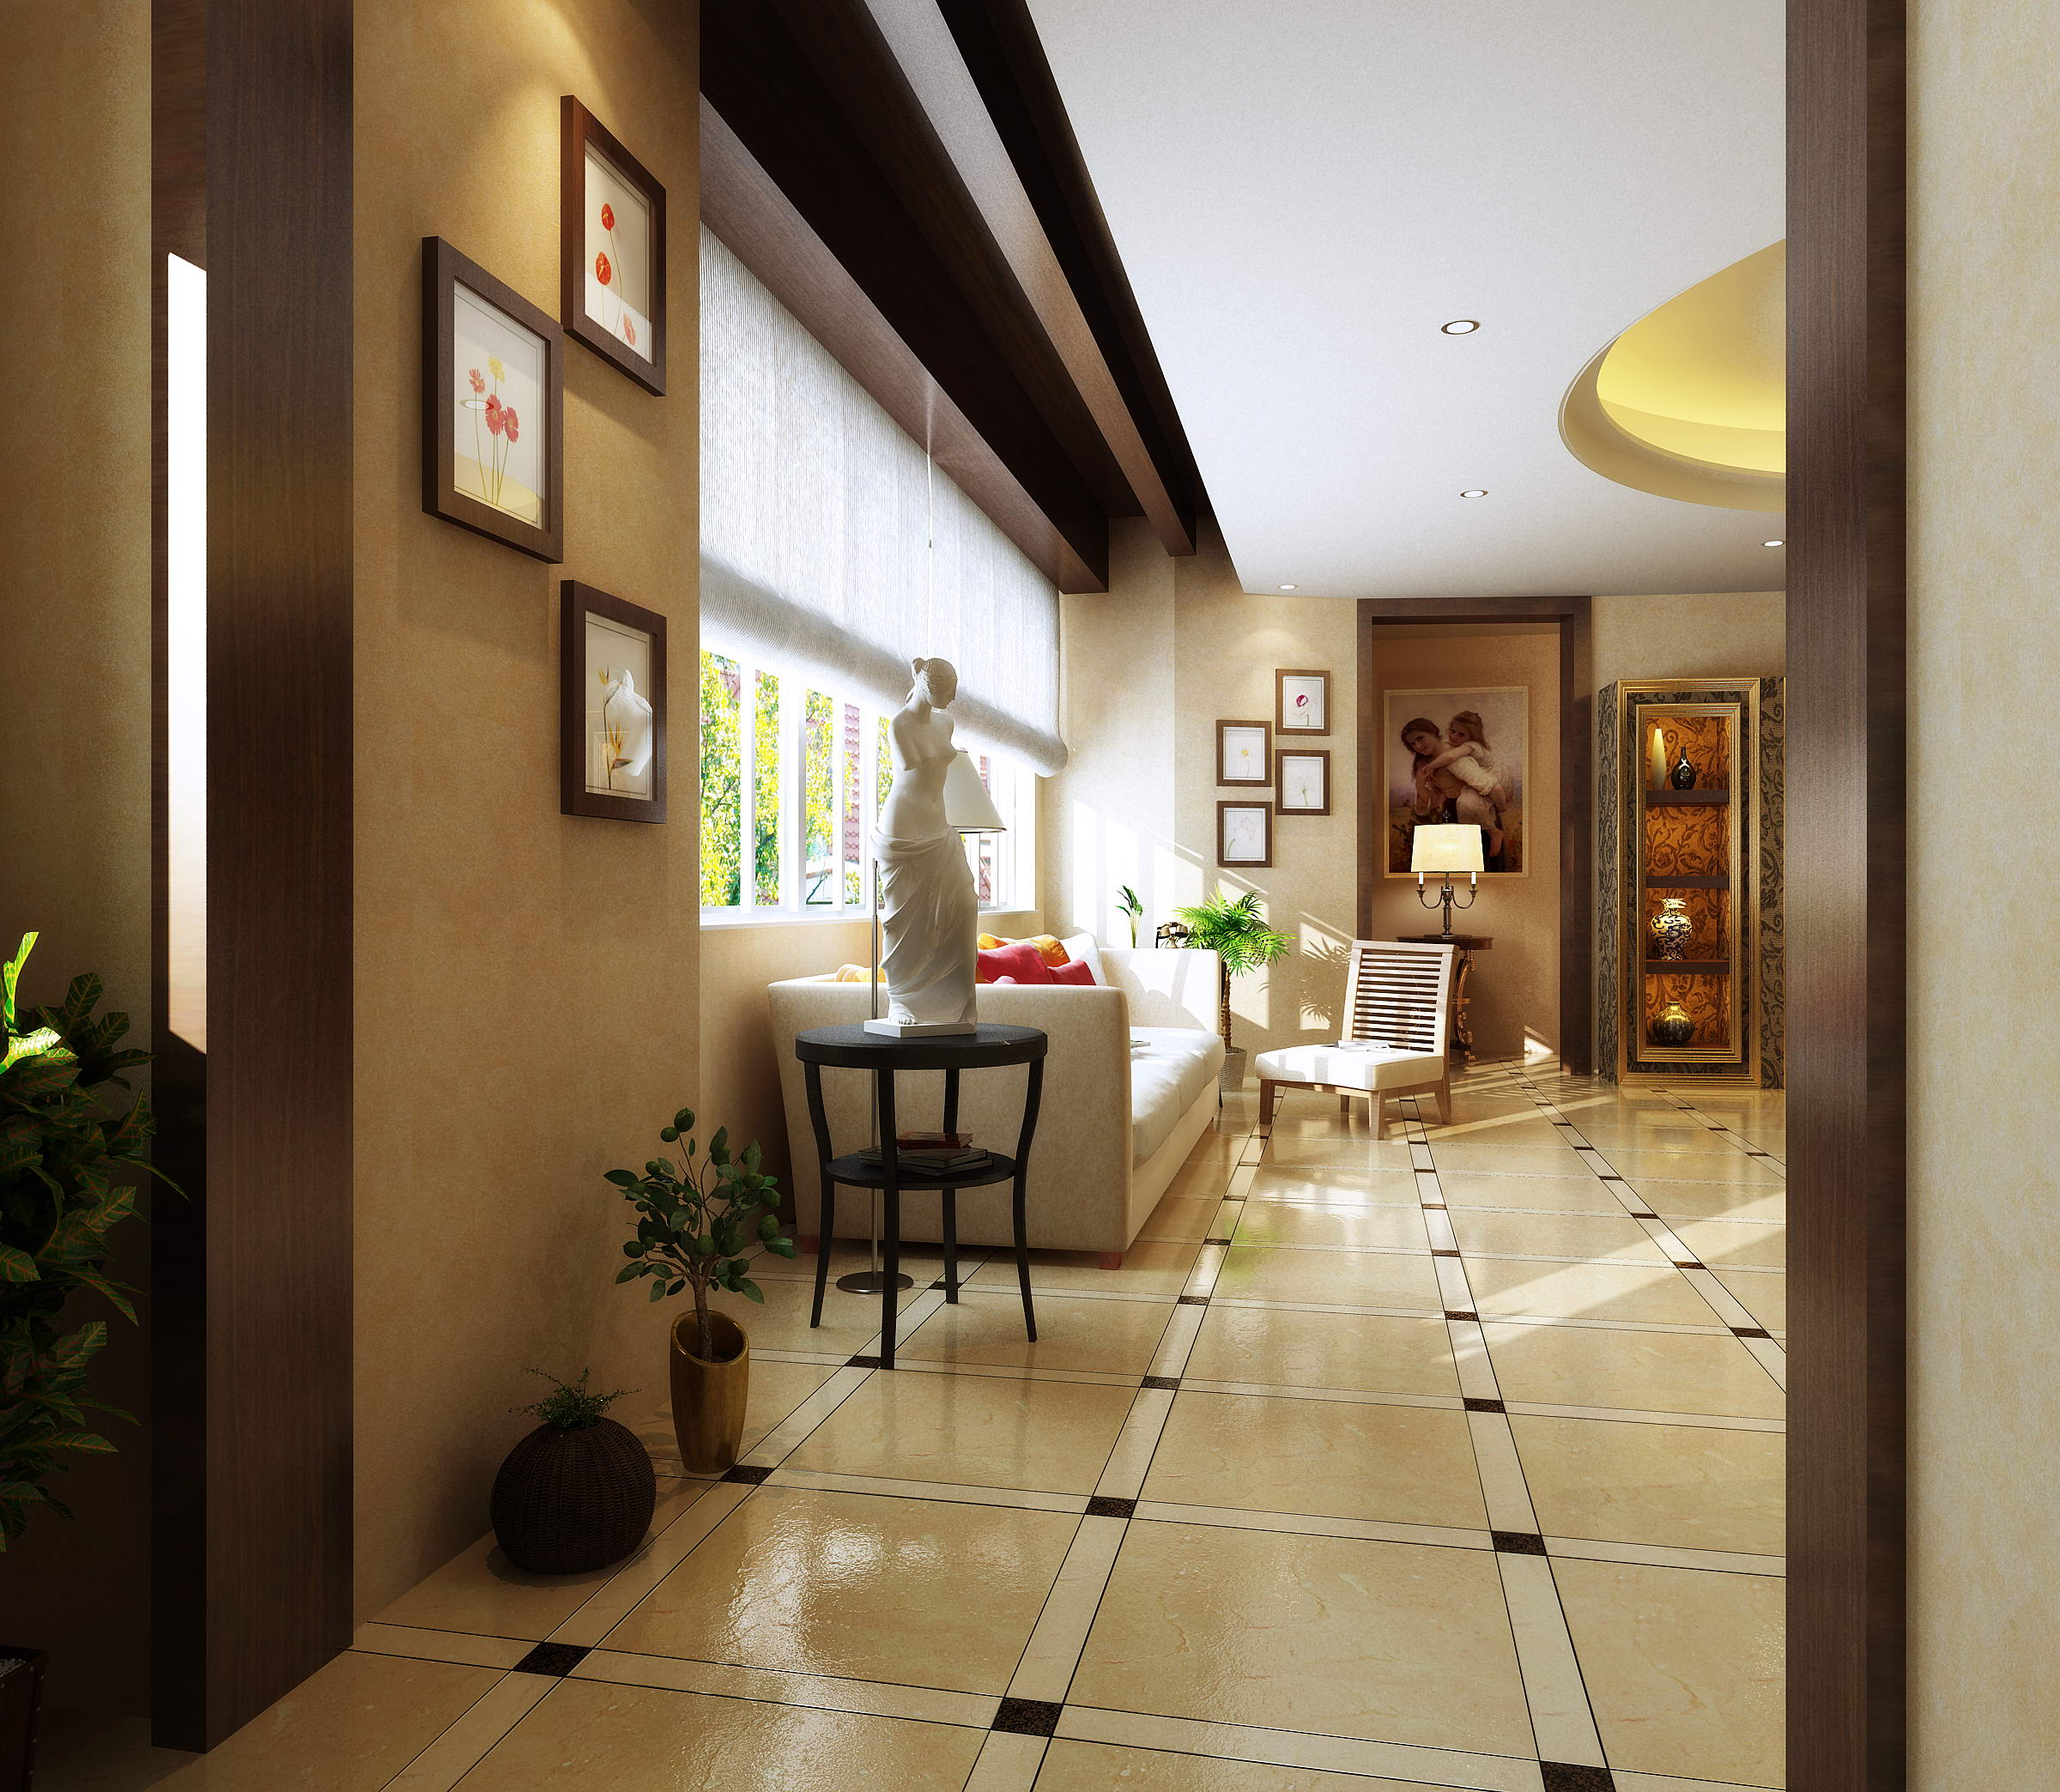 Spacious Drawing Room With Marble Floor 3d Model Max